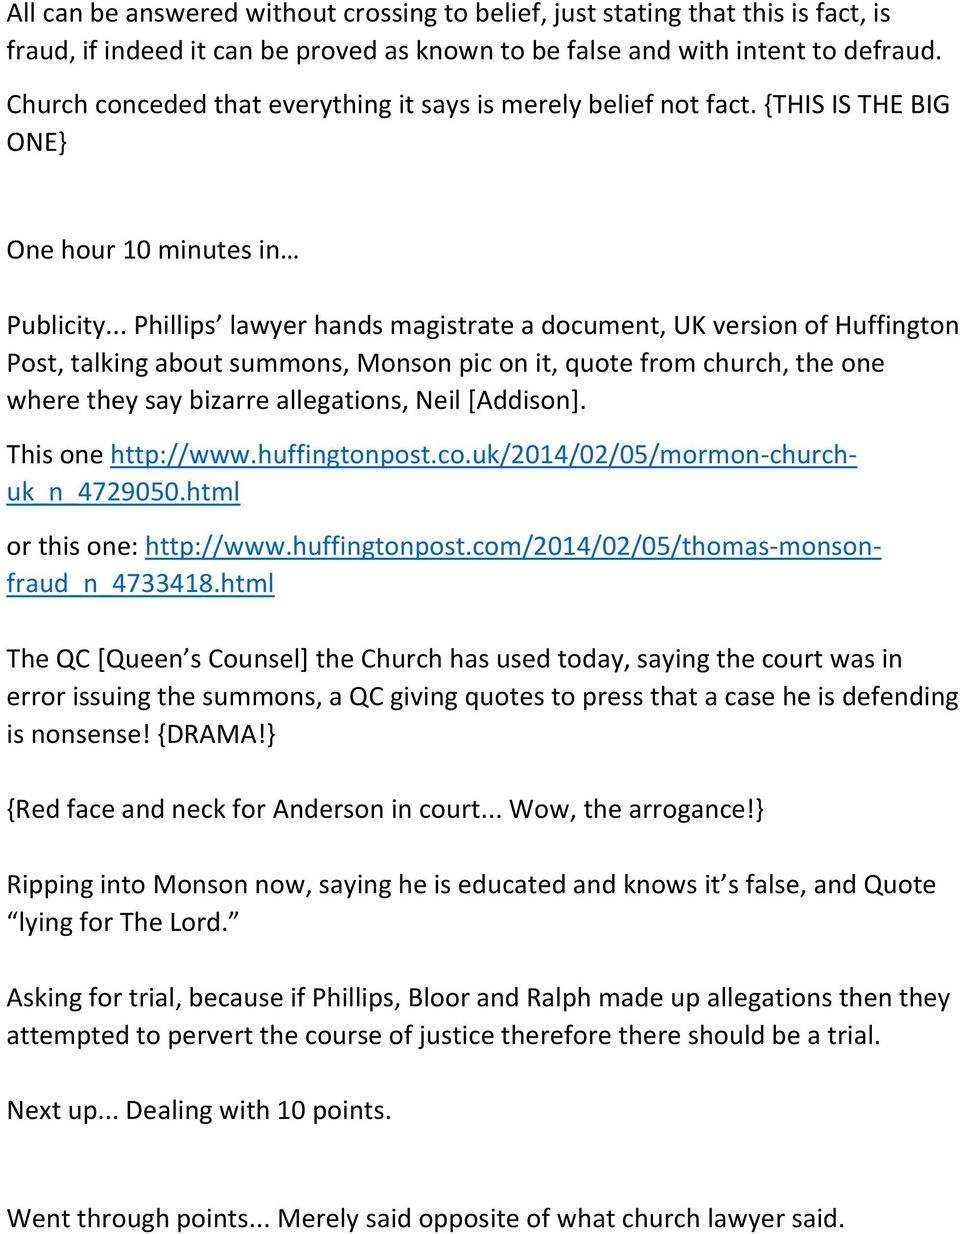 .. Phillips lawyer hands magistrate a document, UK version of Huffington Post, talking about summons, Monson pic on it, quote from church, the one where they say bizarre allegations, Neil [Addison].